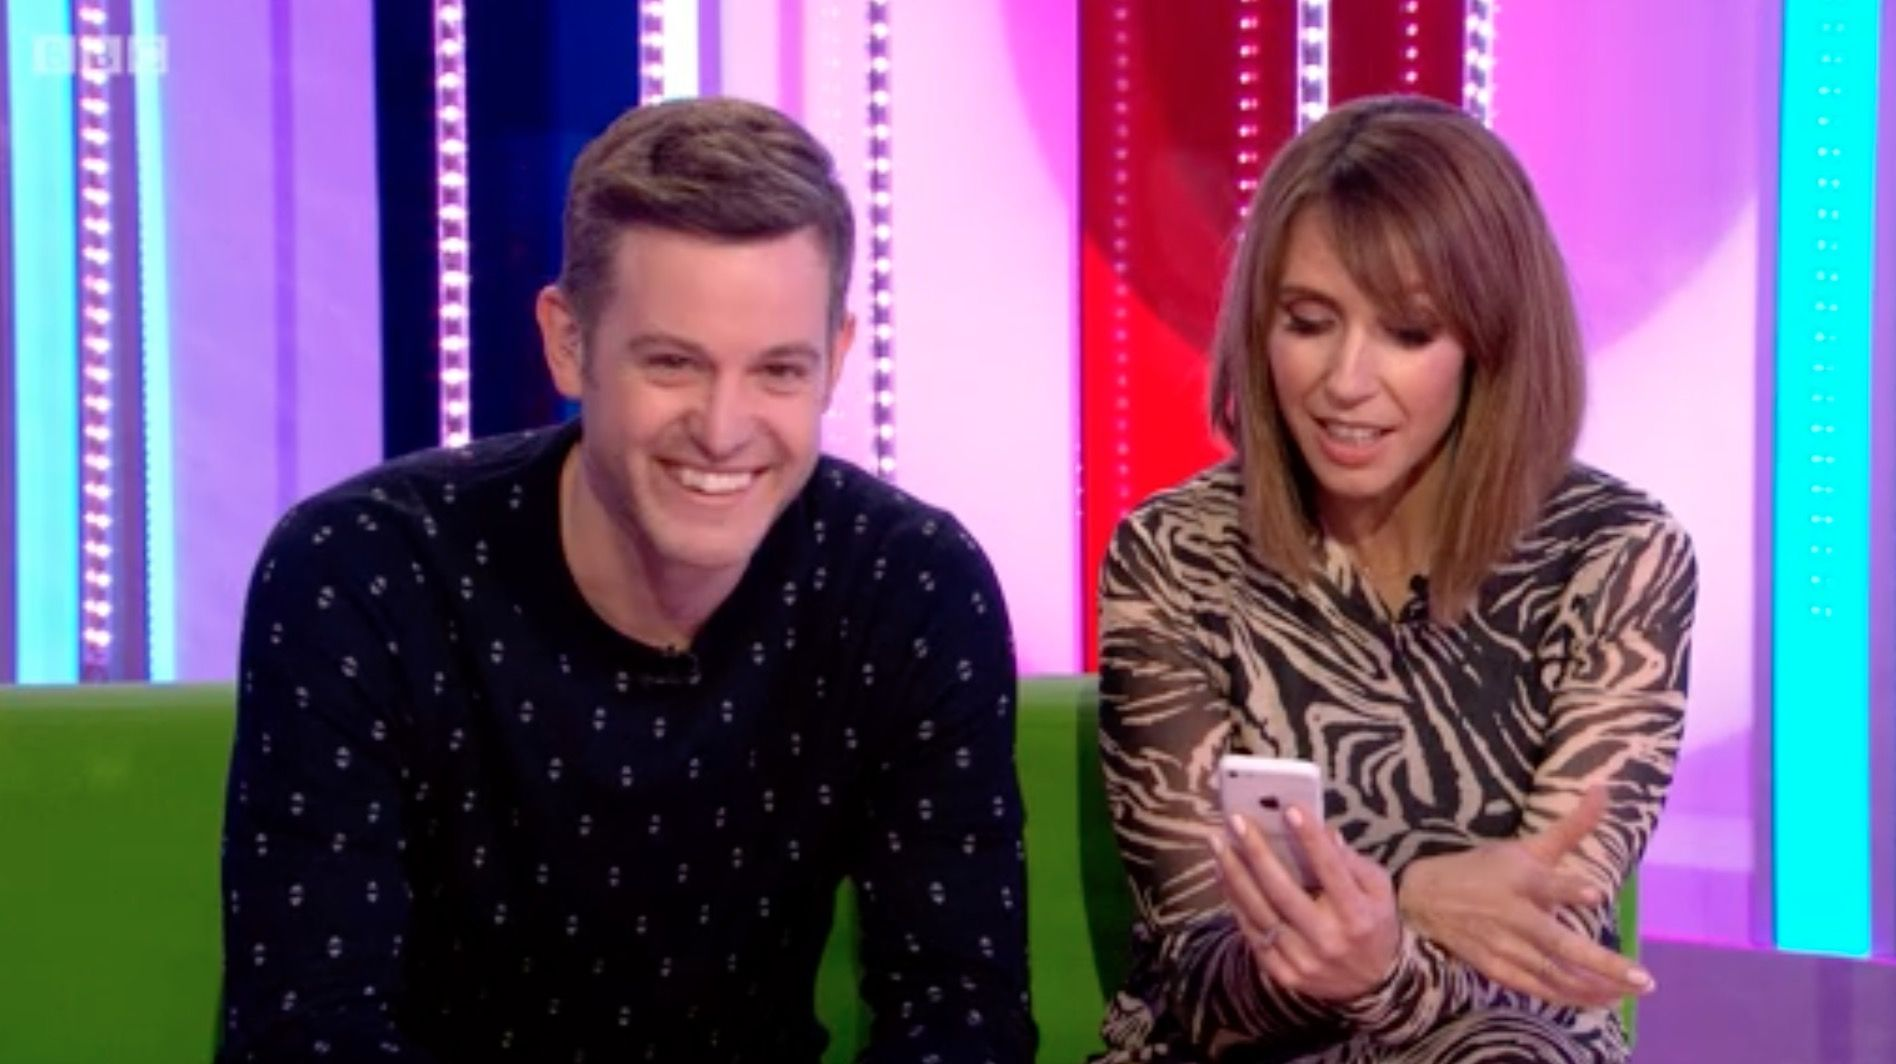 The One Show viewers do a double take after spotting naughty word pre-watershed